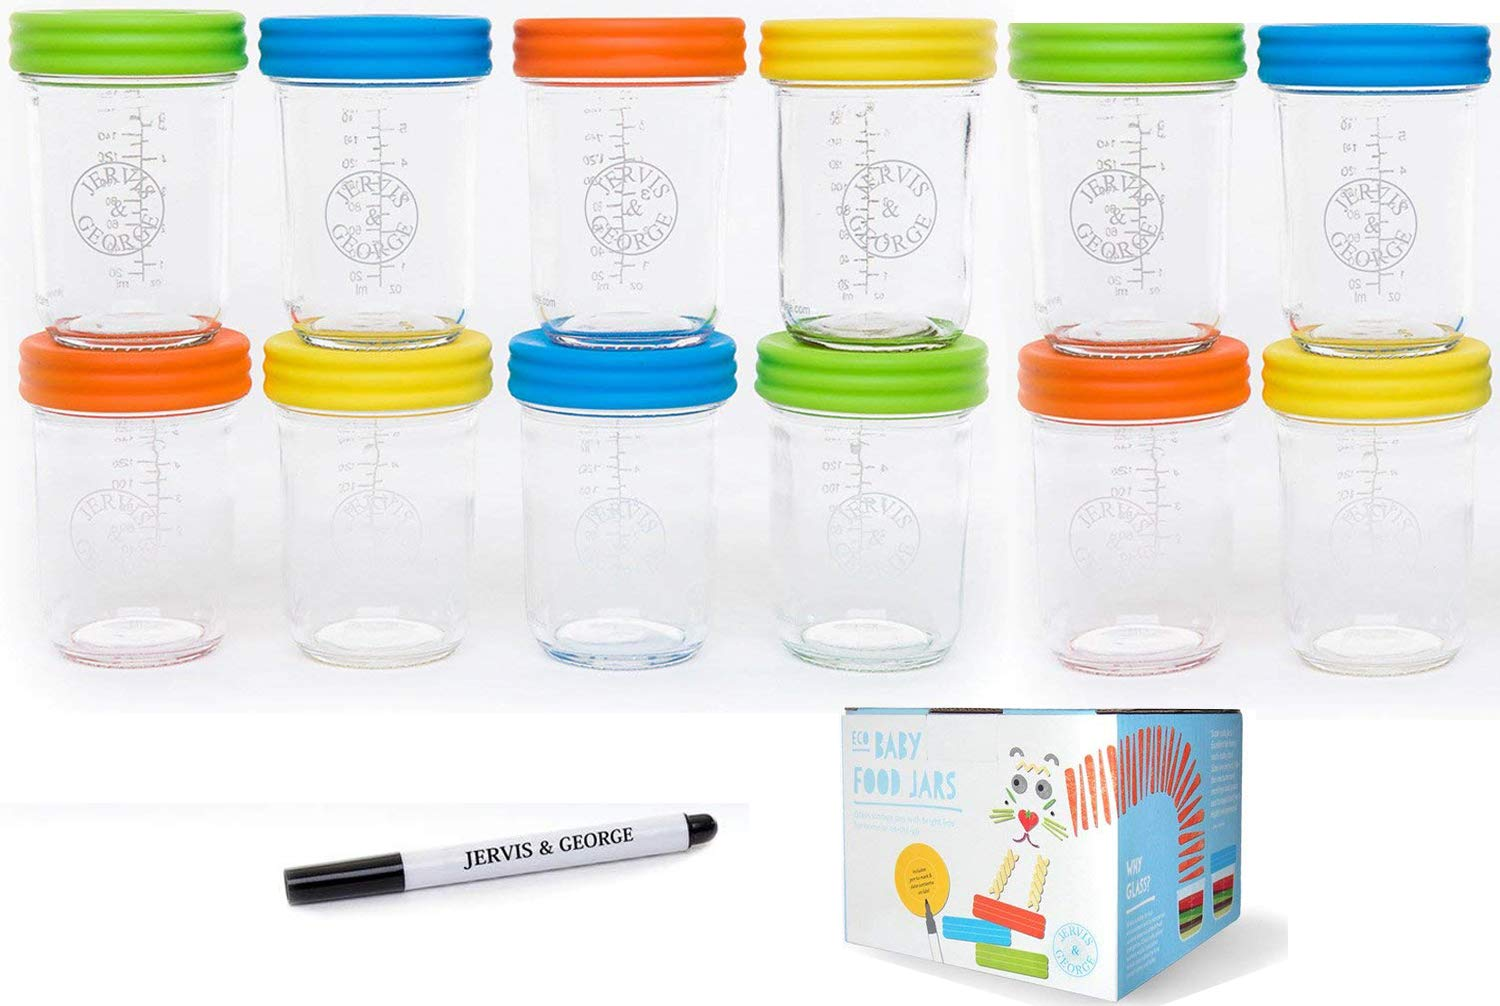 Glass Baby Food Storage Containers - Set contains 12 Small Reusable 8oz Jars with Airtight Lids - Safely Freeze your Homemade Baby Food